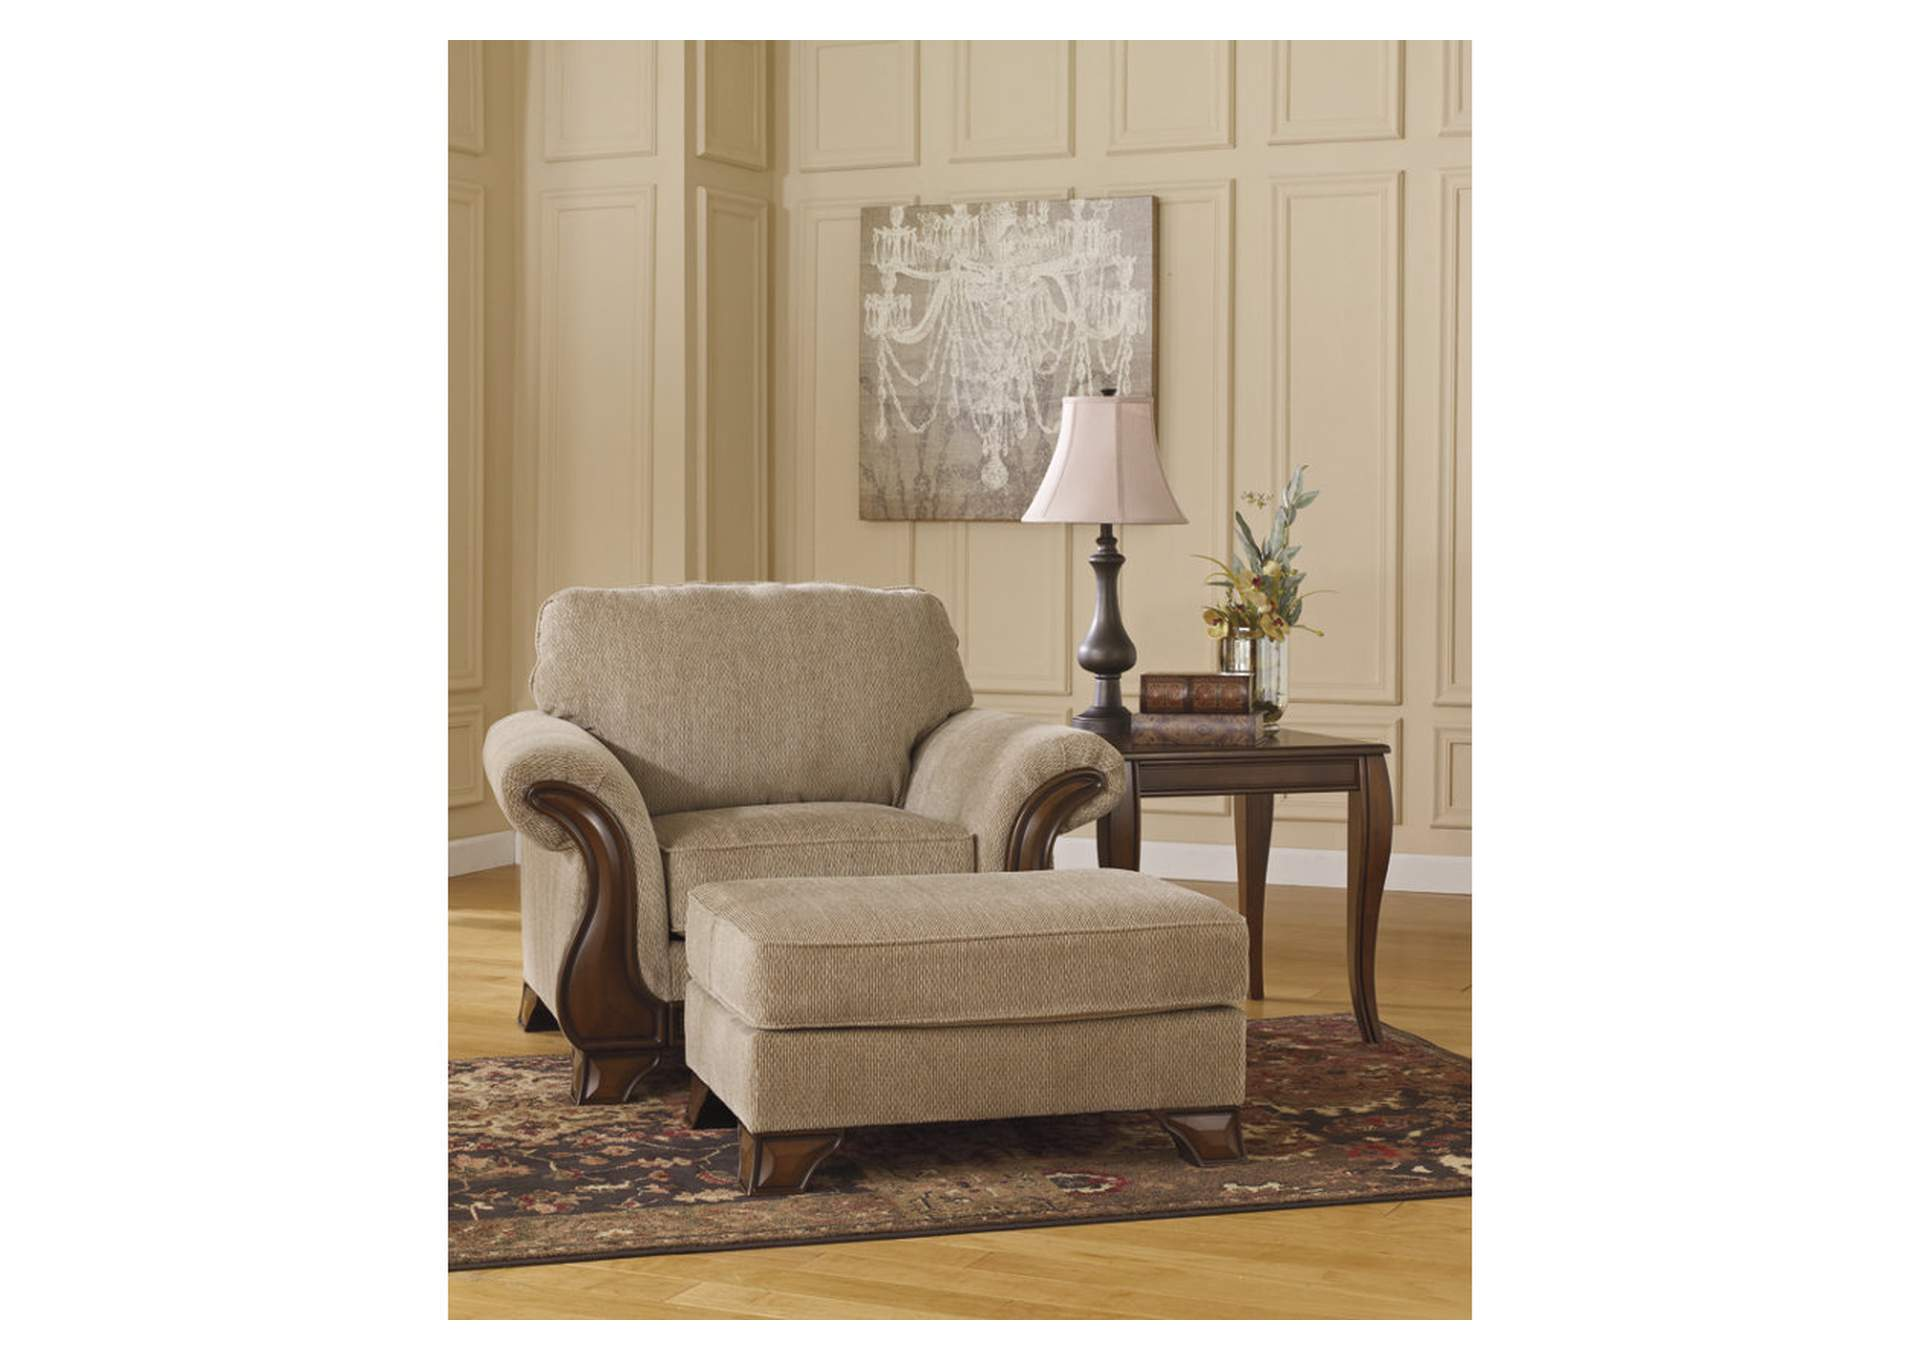 Lanett Chair & Ottoman,Signature Design By Ashley